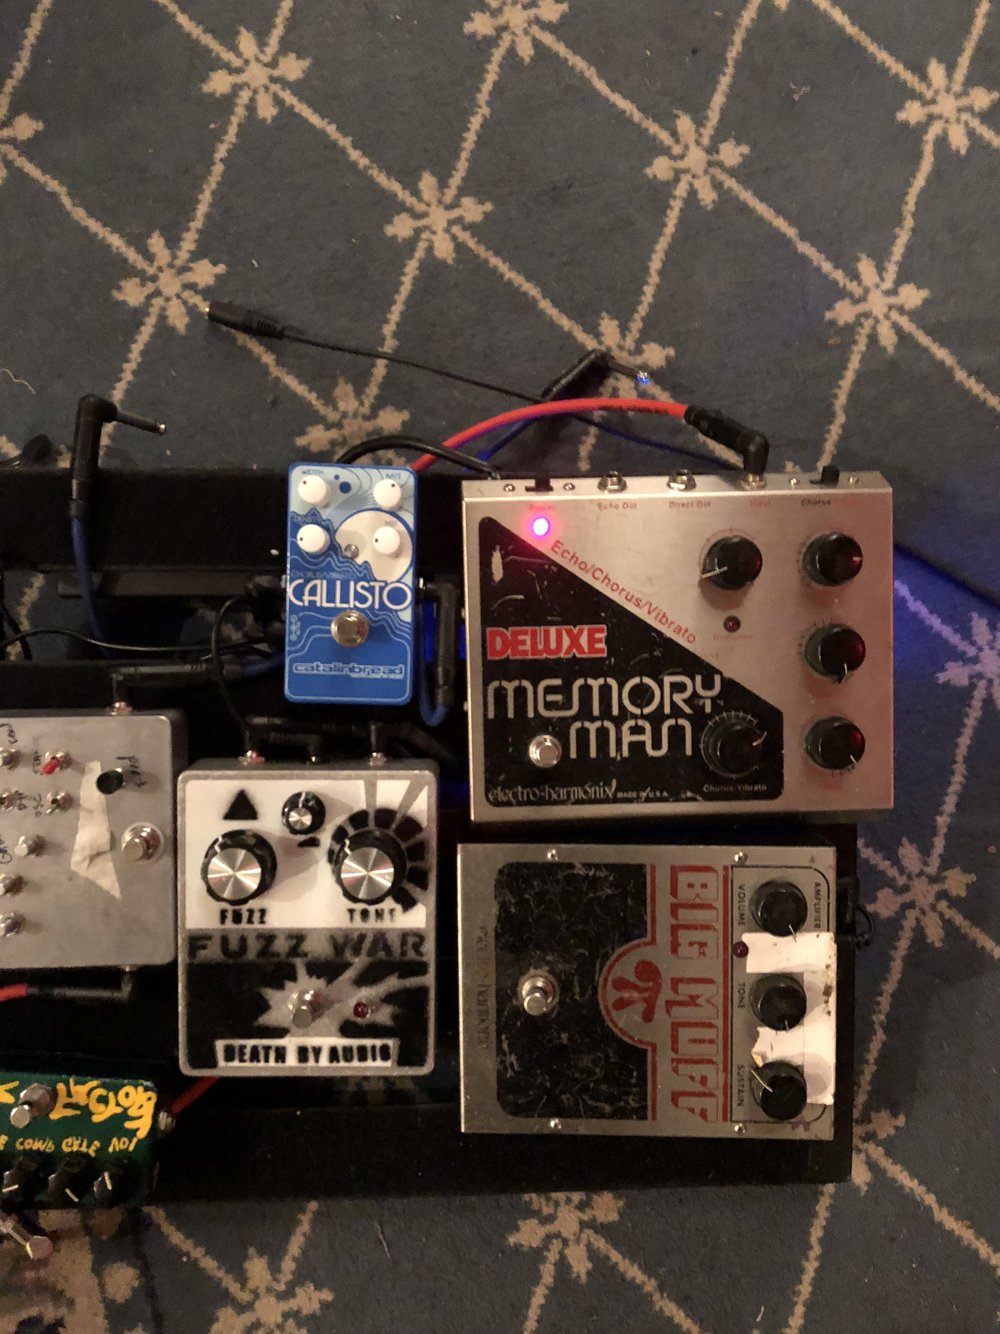 New pedals for new sounds - thanks to Thom...